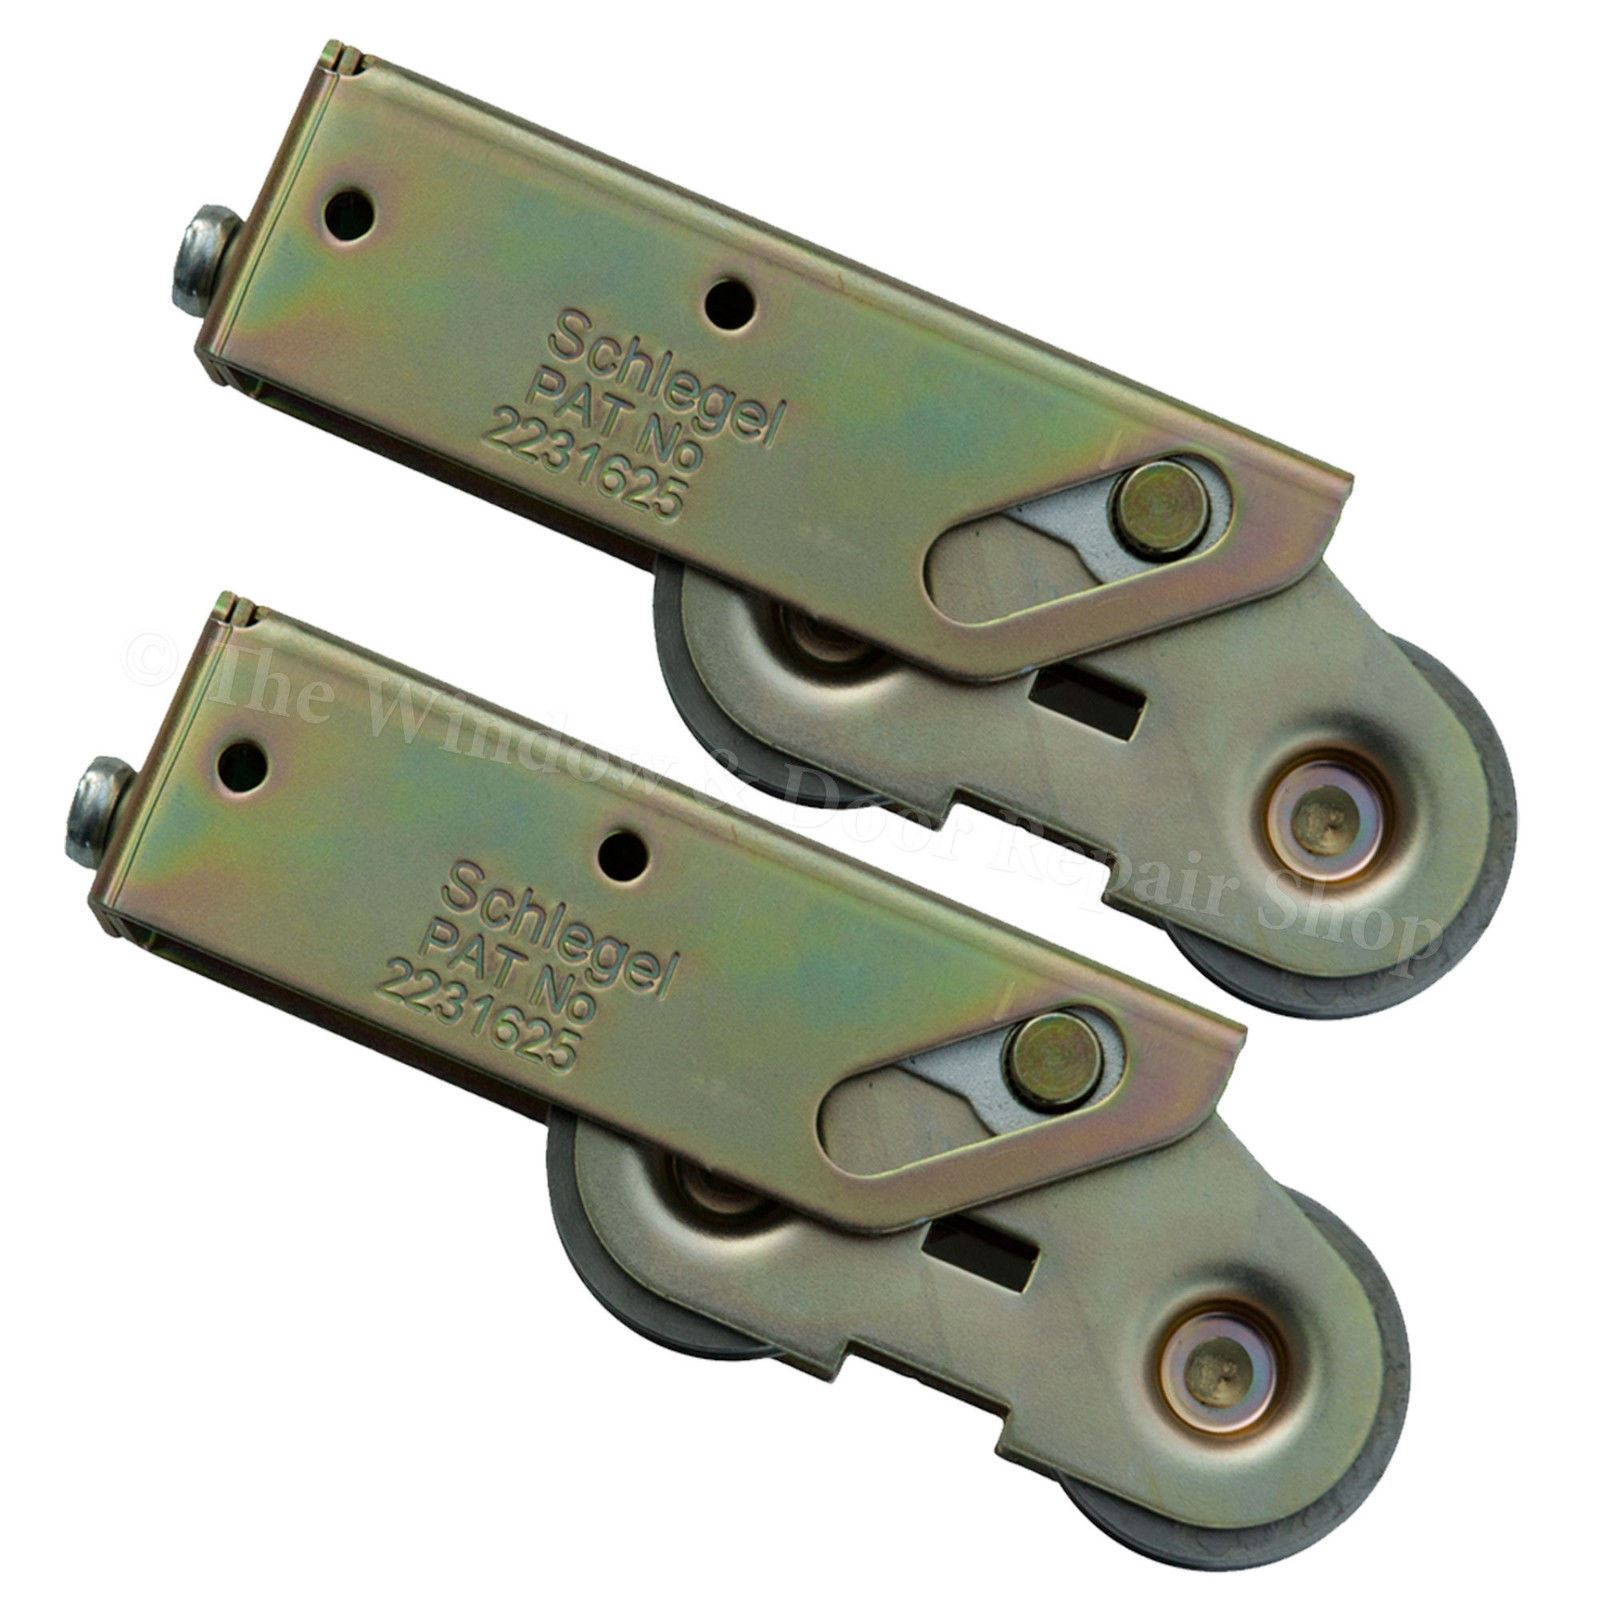 Pair Schlegel Tandem Patio Door Wheels Sliding Roller